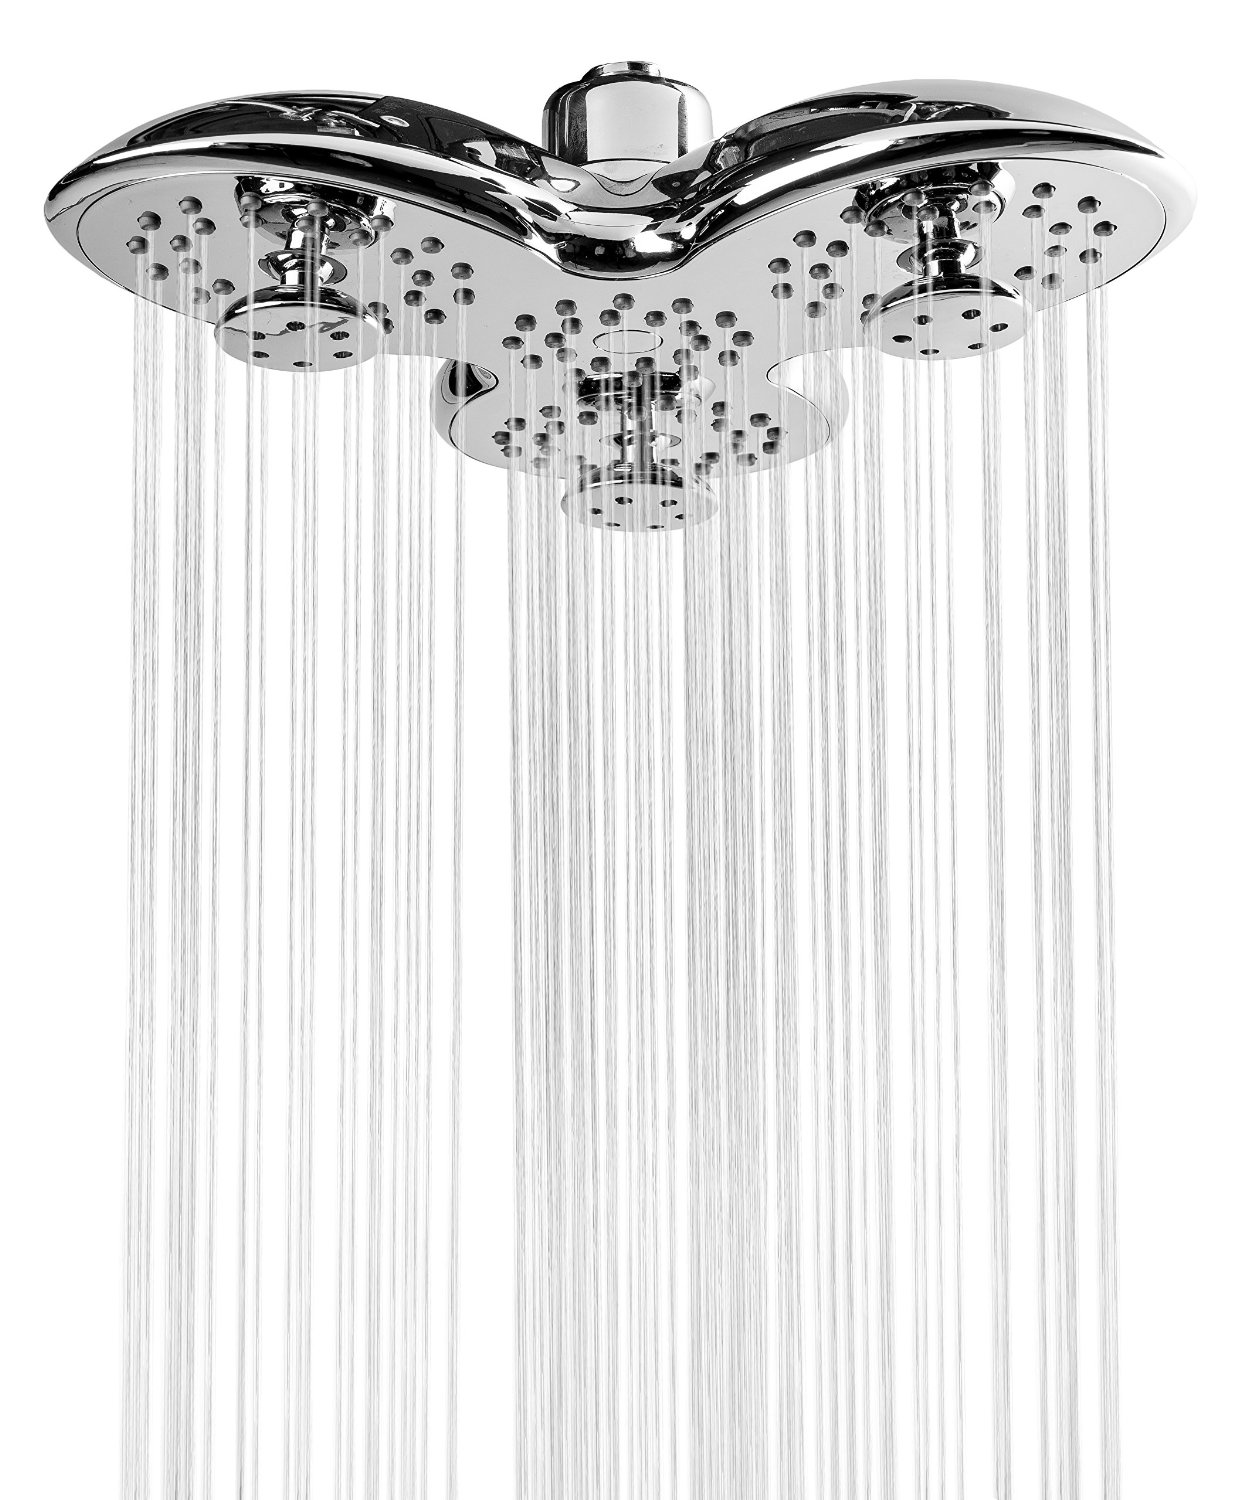 A-Flow™ Luxury Large 8 Showerhead with 3 Powerful Multi-Directional Massaging Water Jets